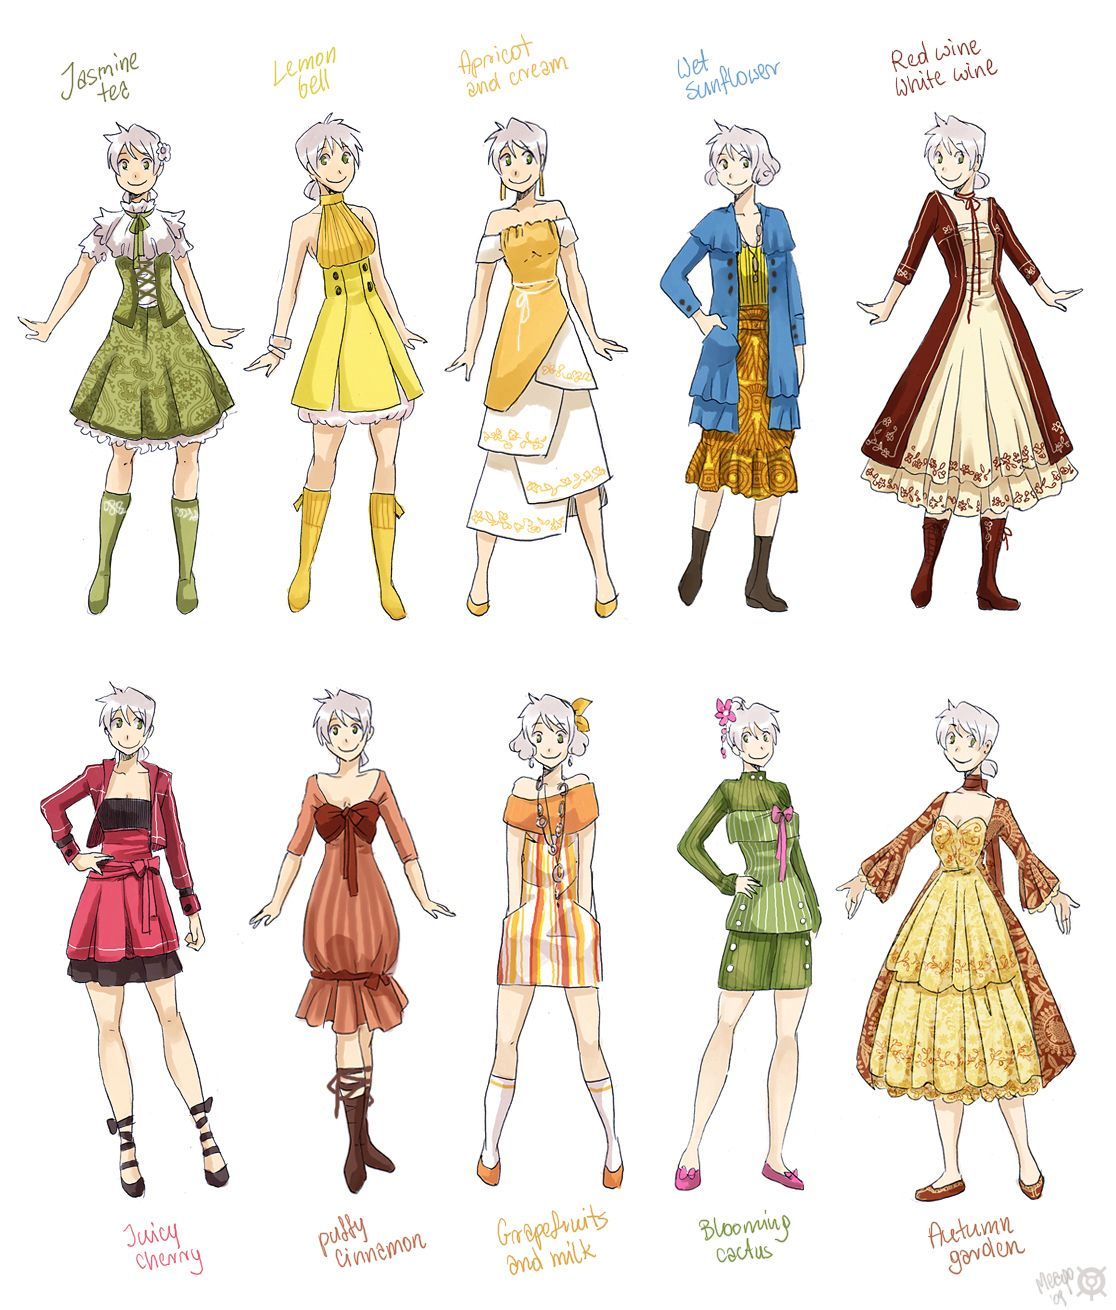 Various Female Clothes 2 By Meago On Deviantart Manga Clothes Clothes Illustration Clothes For Women